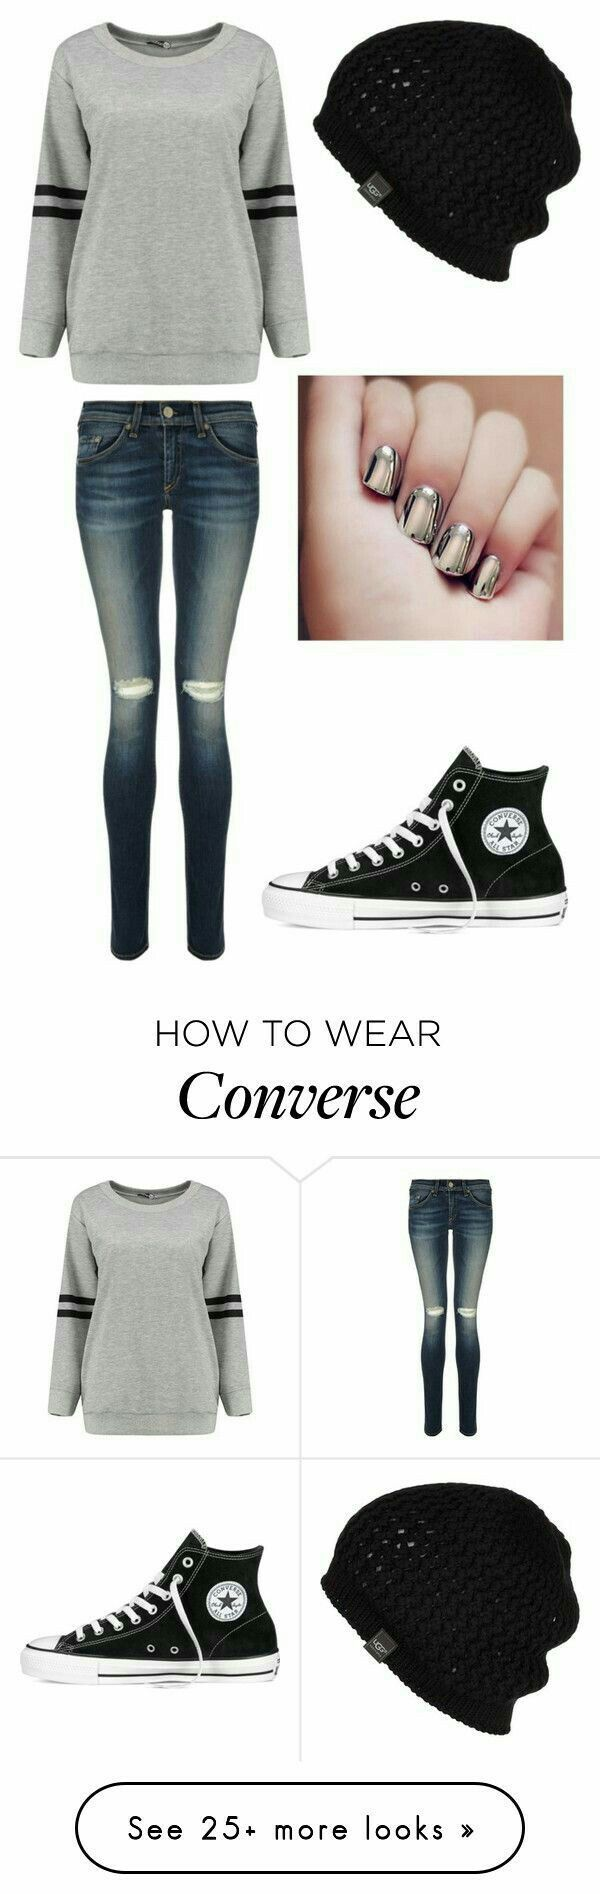 #Ropa #Moda #Outfits #Style #Converse